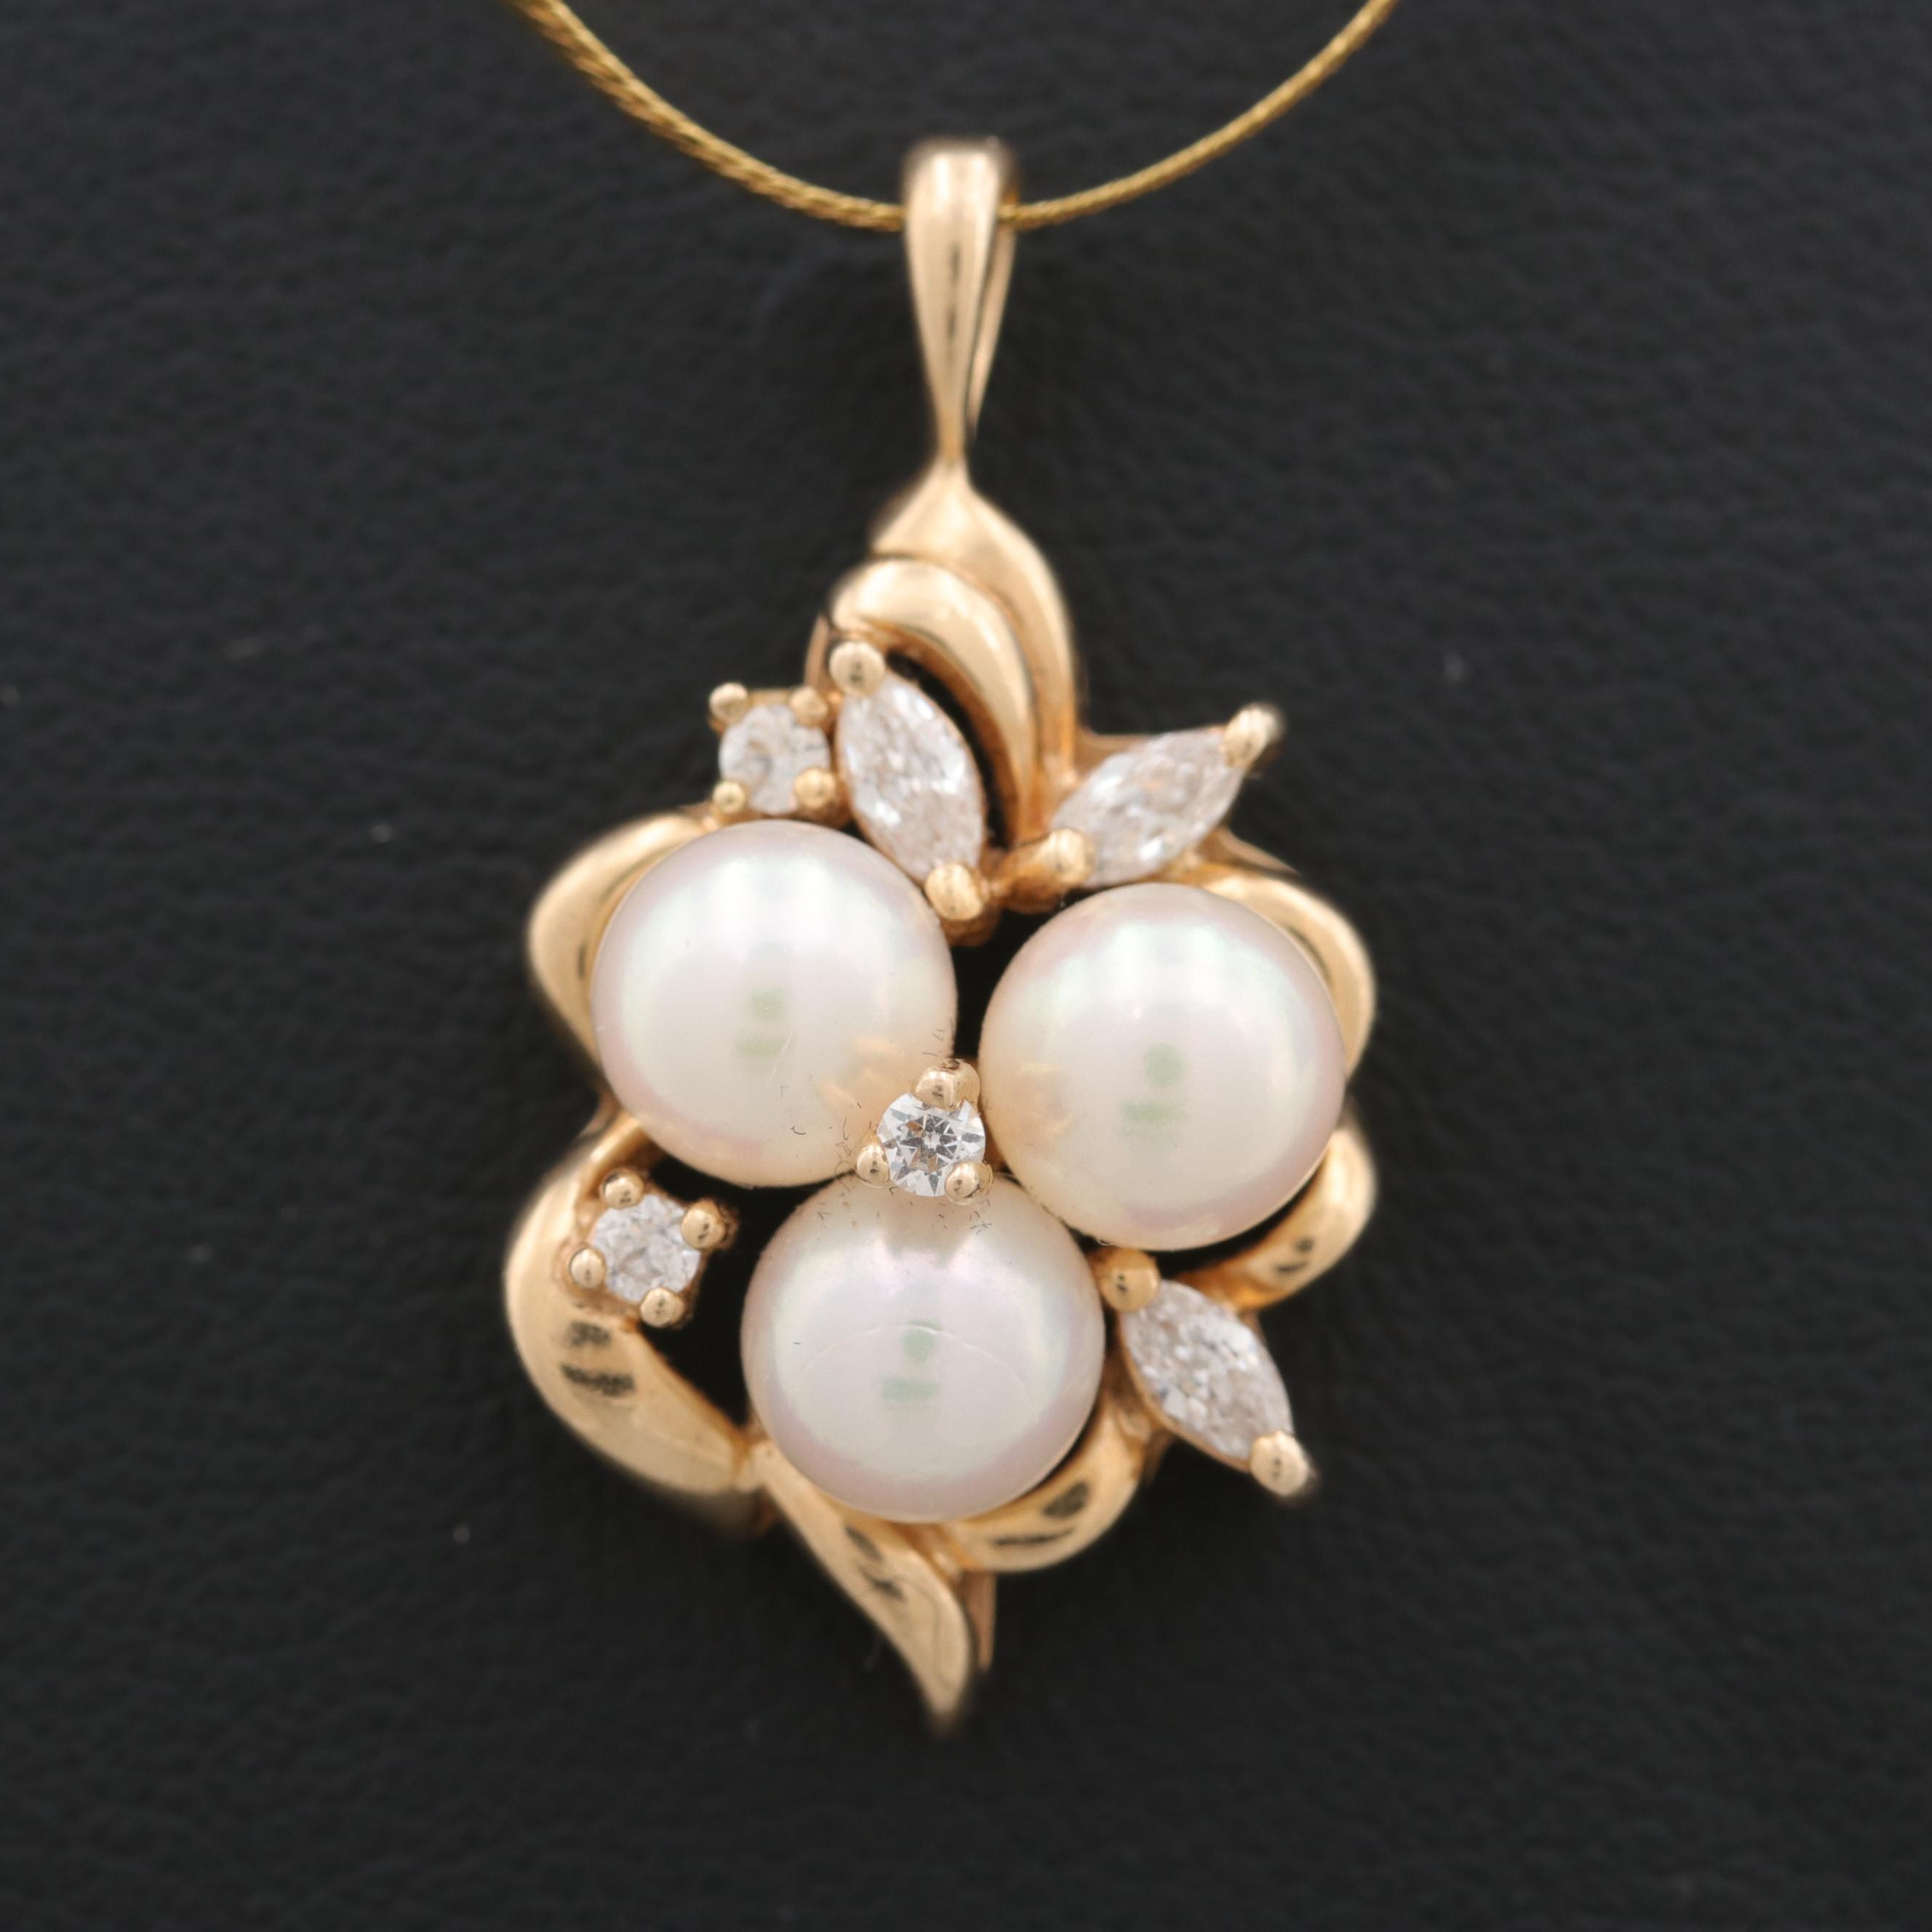 14K Yellow Gold Cultured Pearl and Cubic Zirconia Pendant Necklace